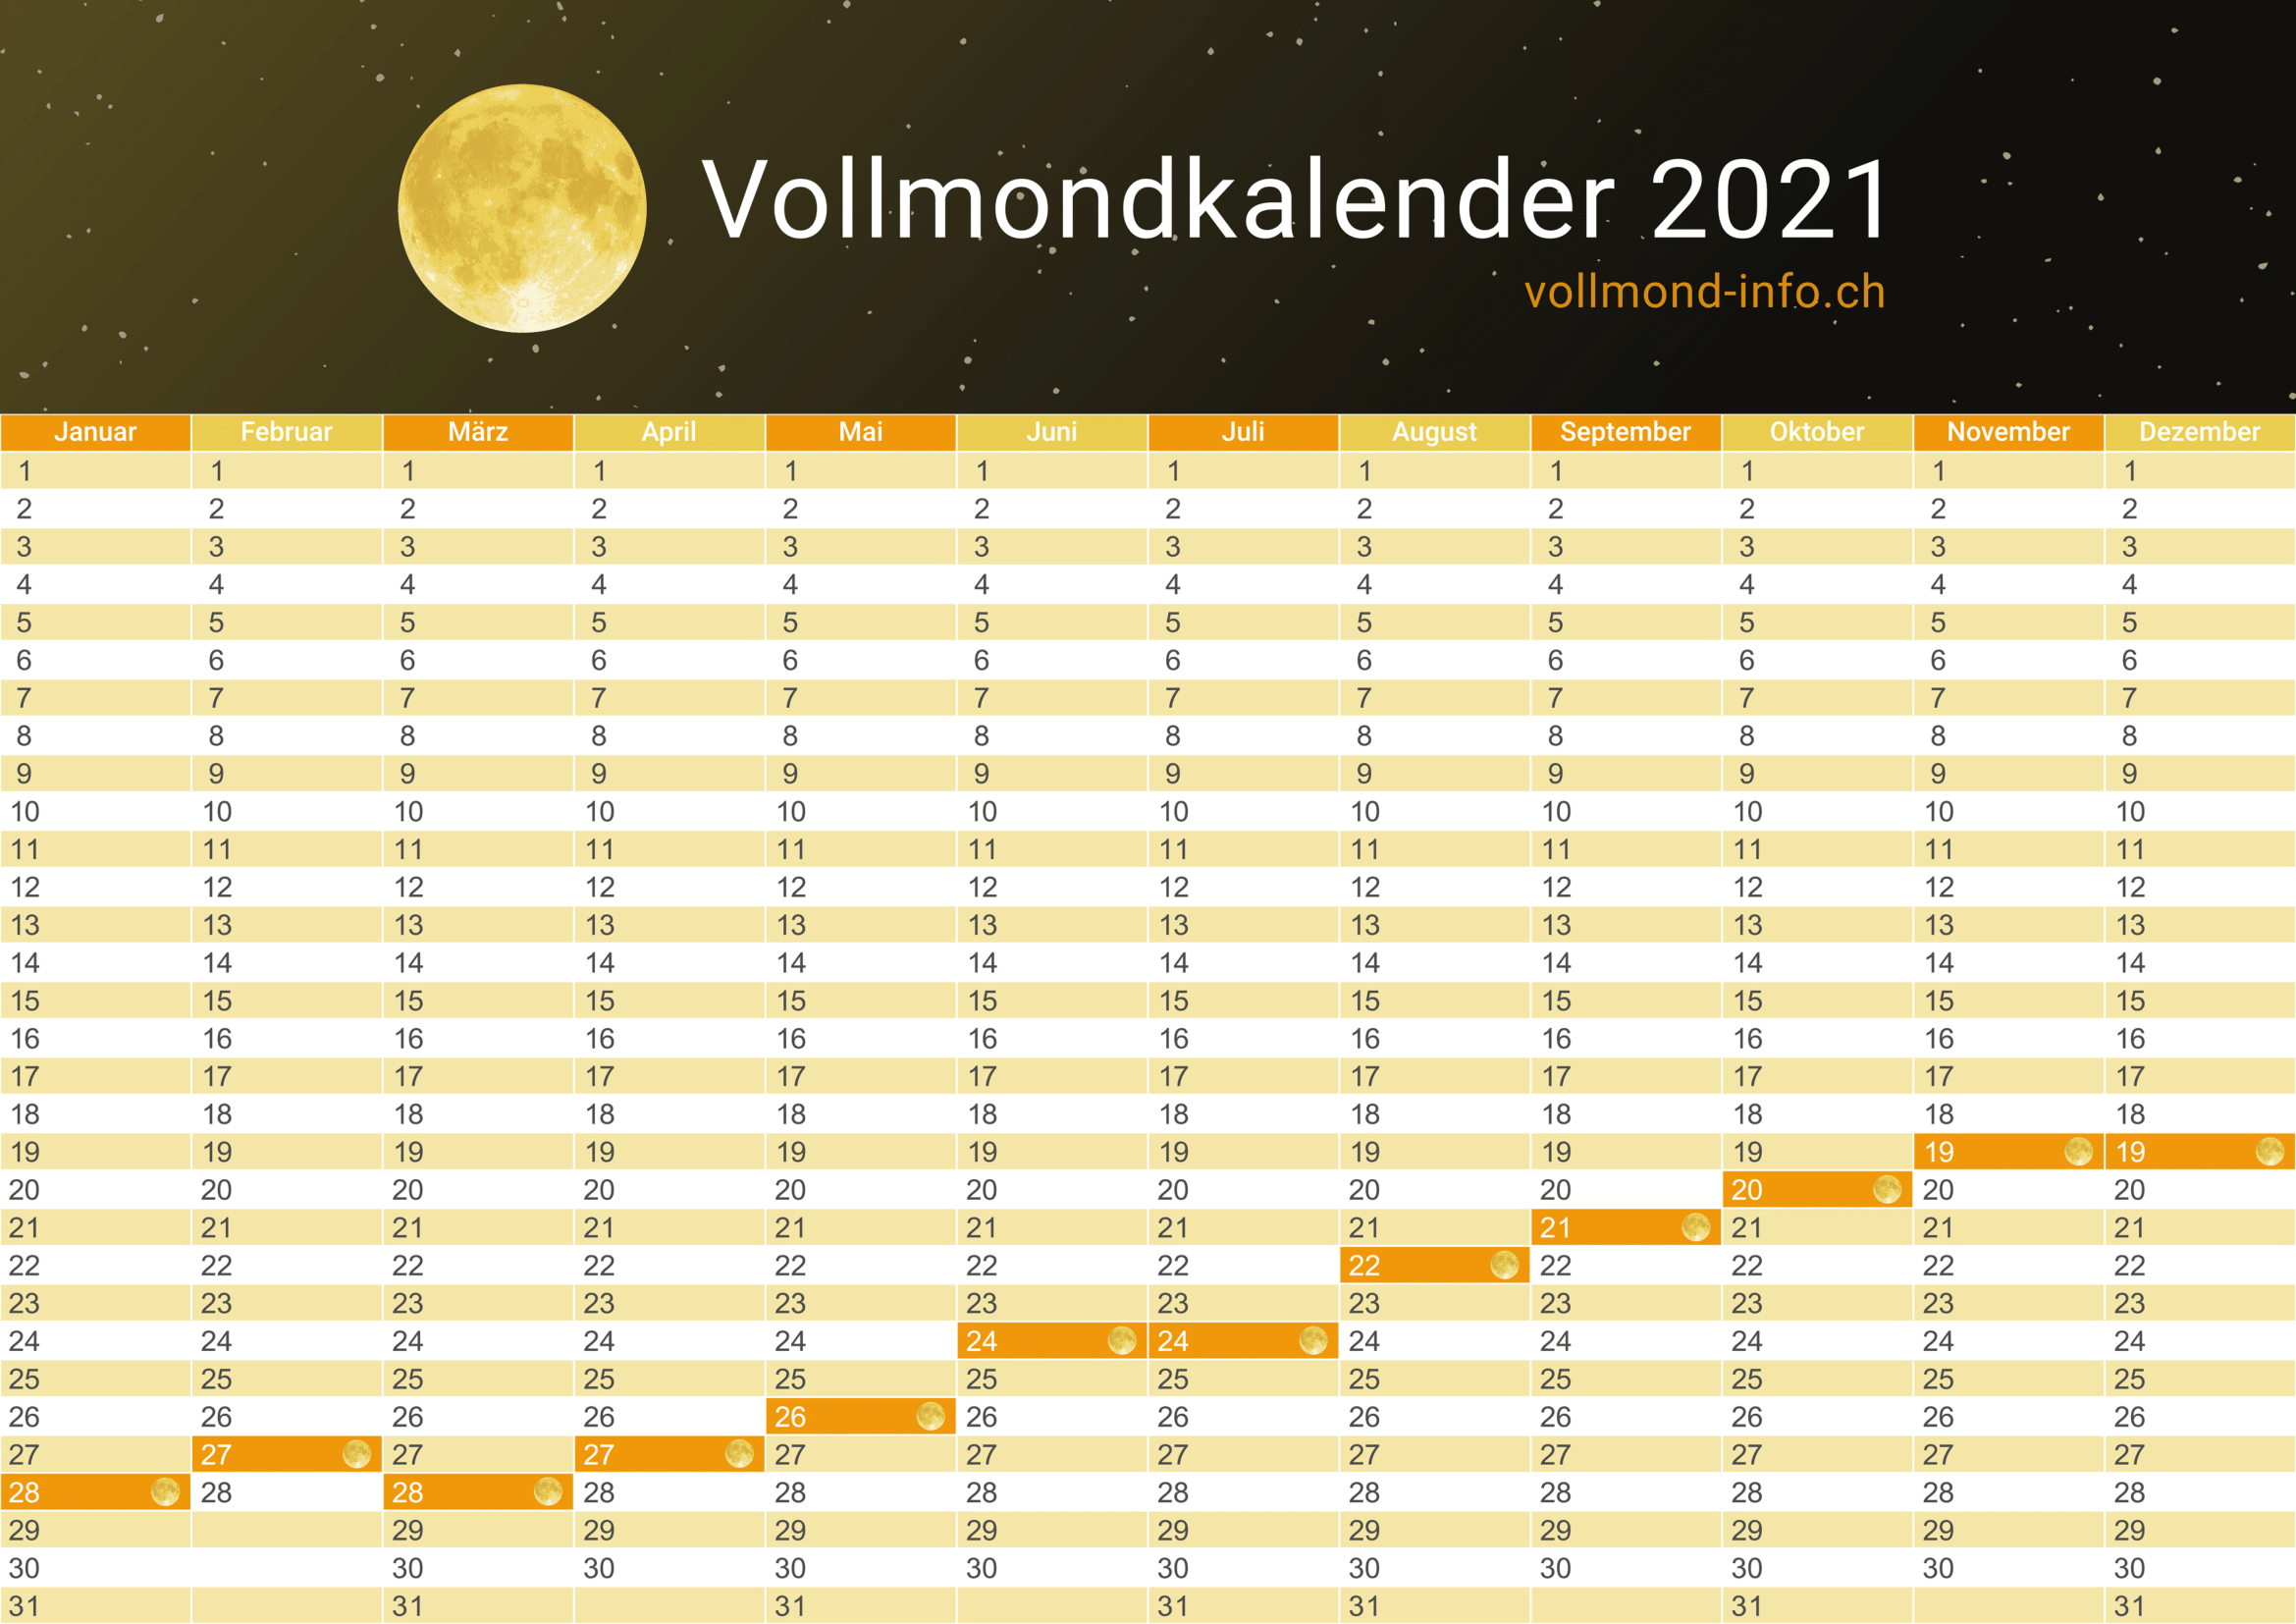 Vollmondkalender 2021